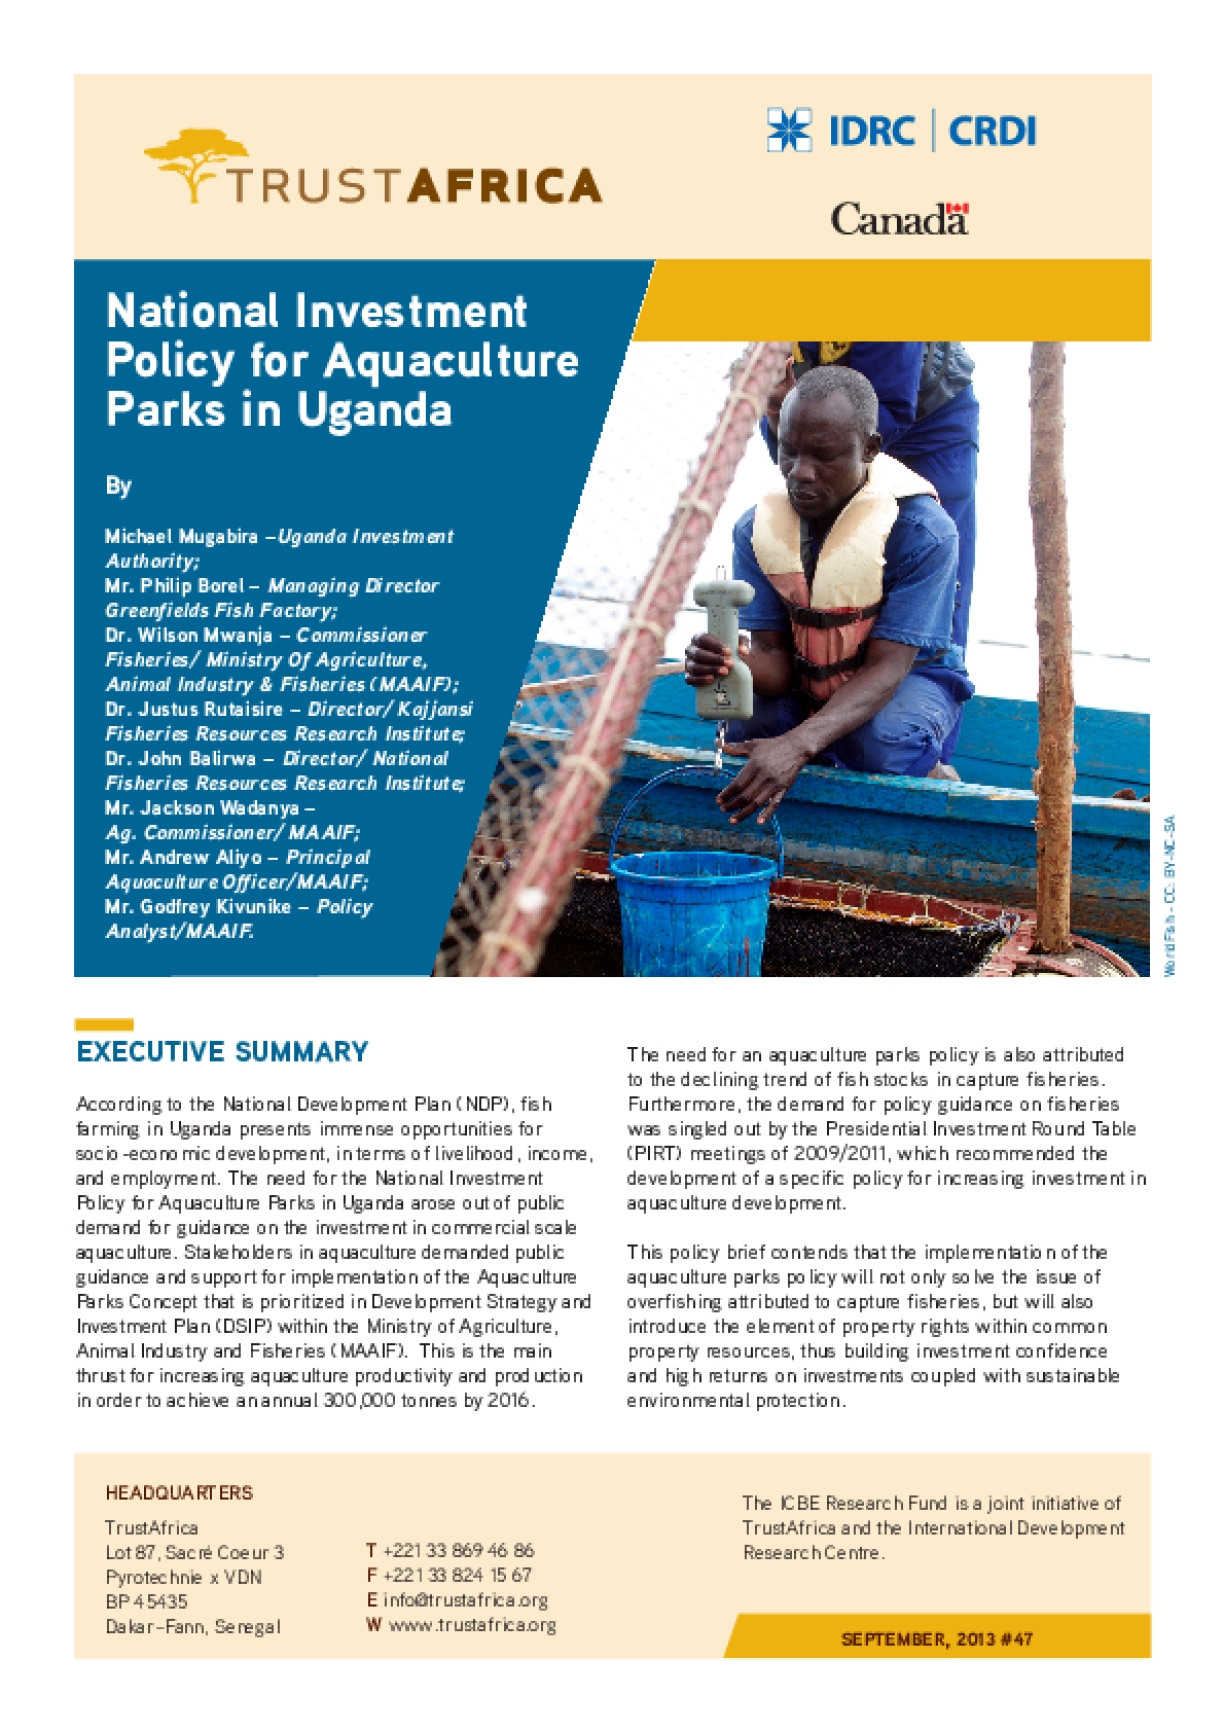 National Investment Policy for Aquaculture Parks in Uganda